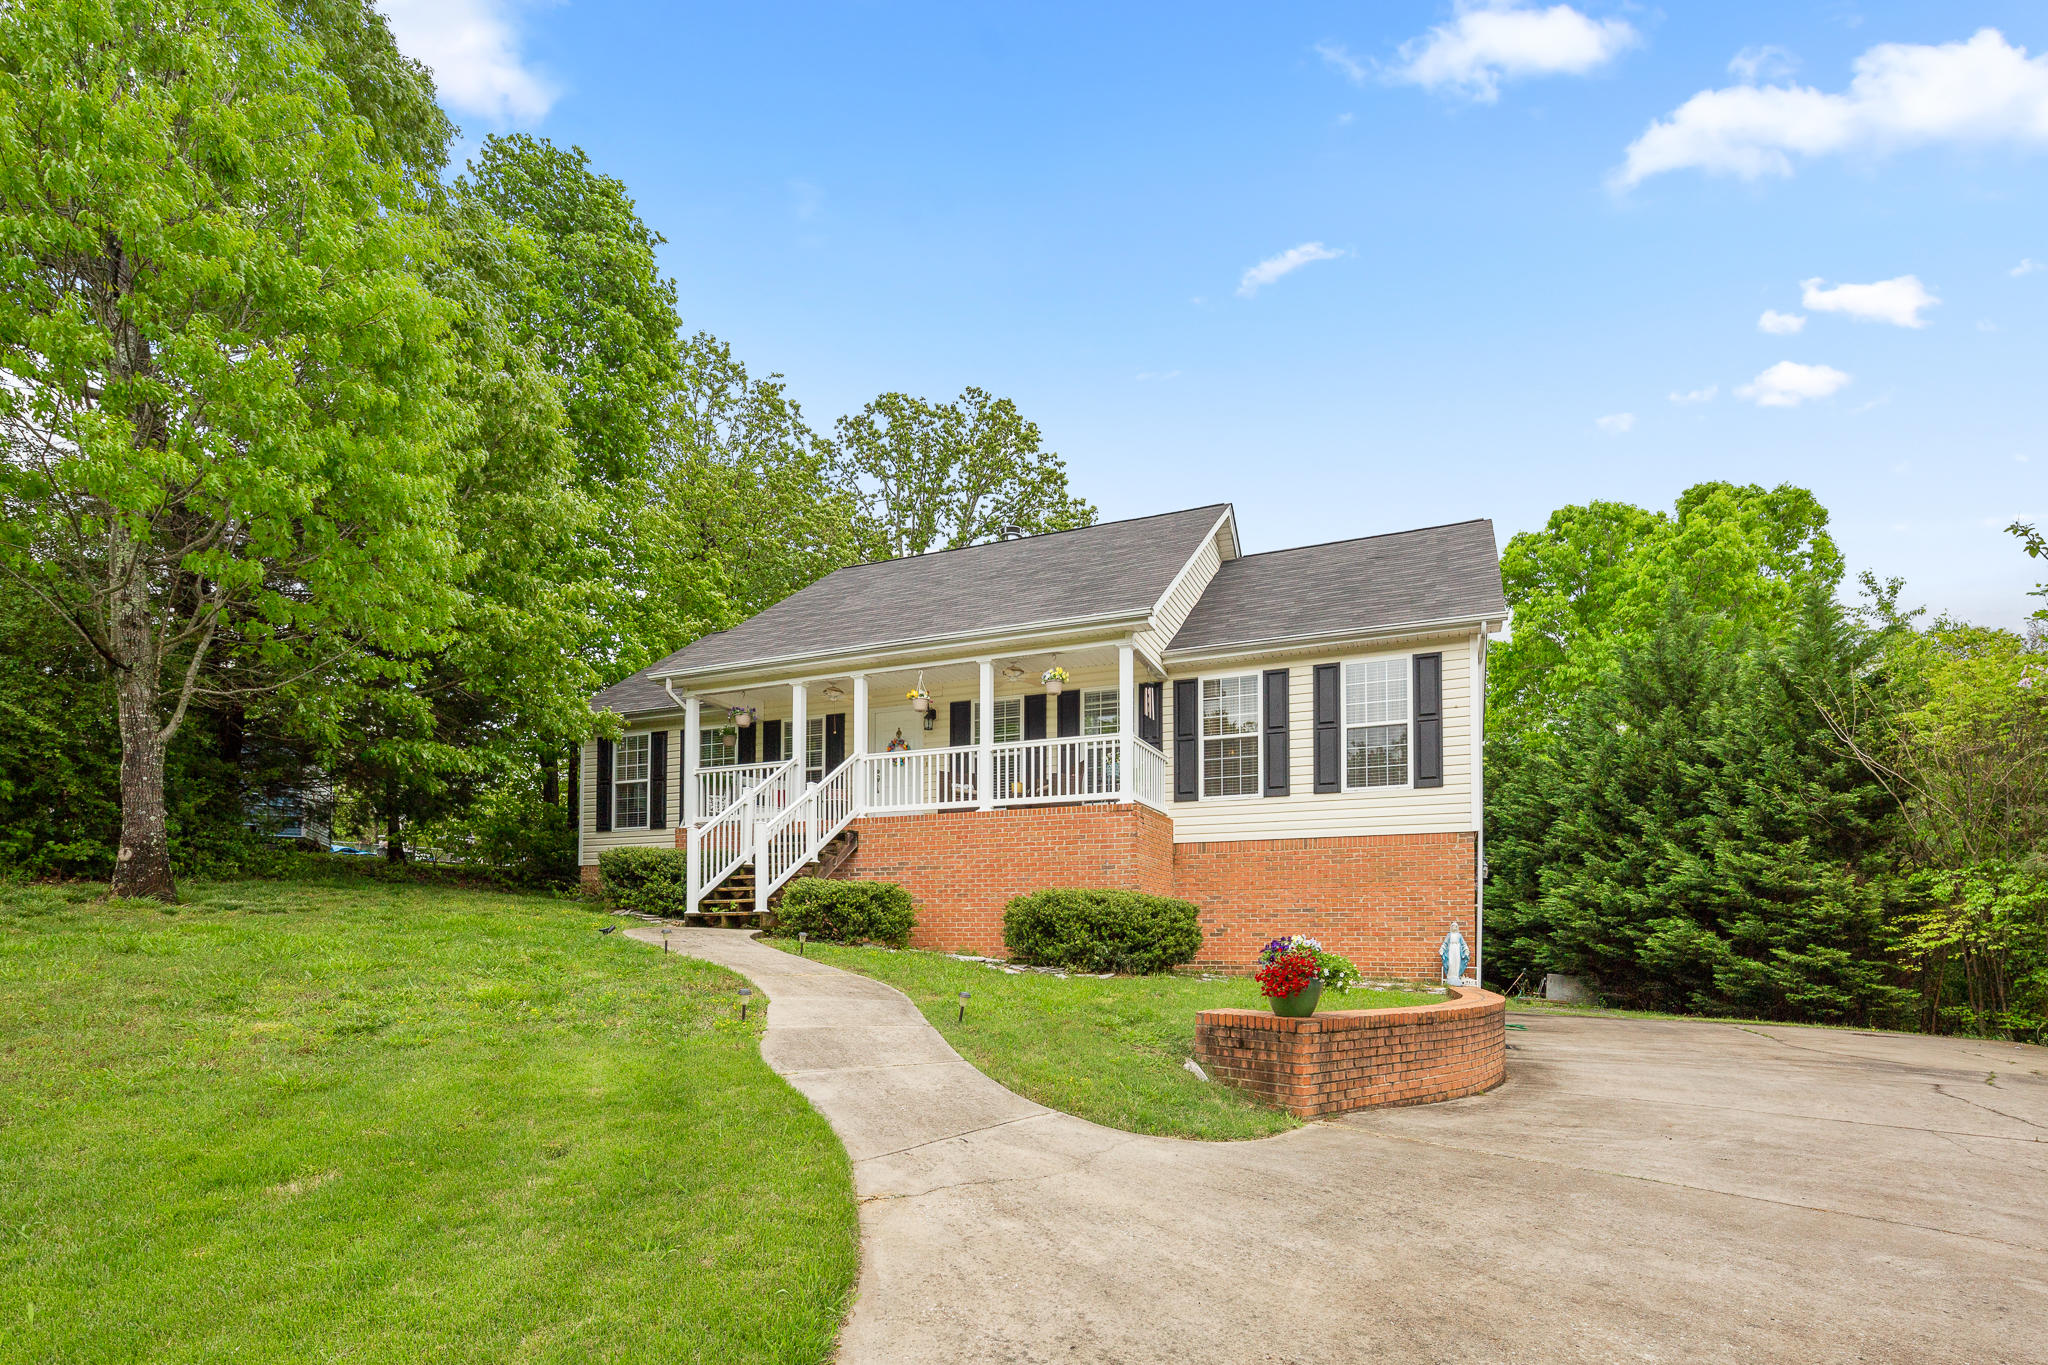 7924 Cove Ridge Dr, Hixson, TN 37343